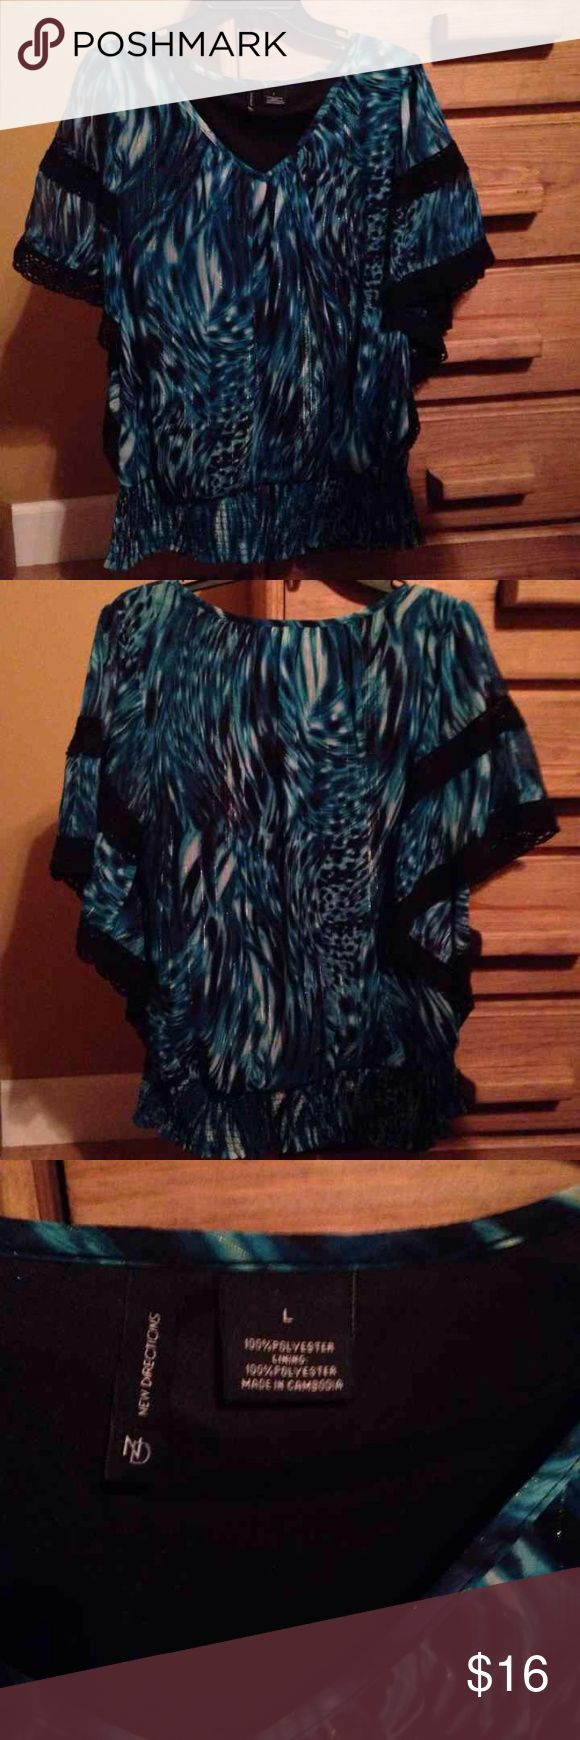 Vibrant color batwing top, size large New Directions top from Belk's. Worn gently, EUC. Beautiful colors with silver threads throughout. Crochet detail on each arm & smocked bottom. Size large.  100% Polyester Lining: 100% Polyester new directions Tops Blouses